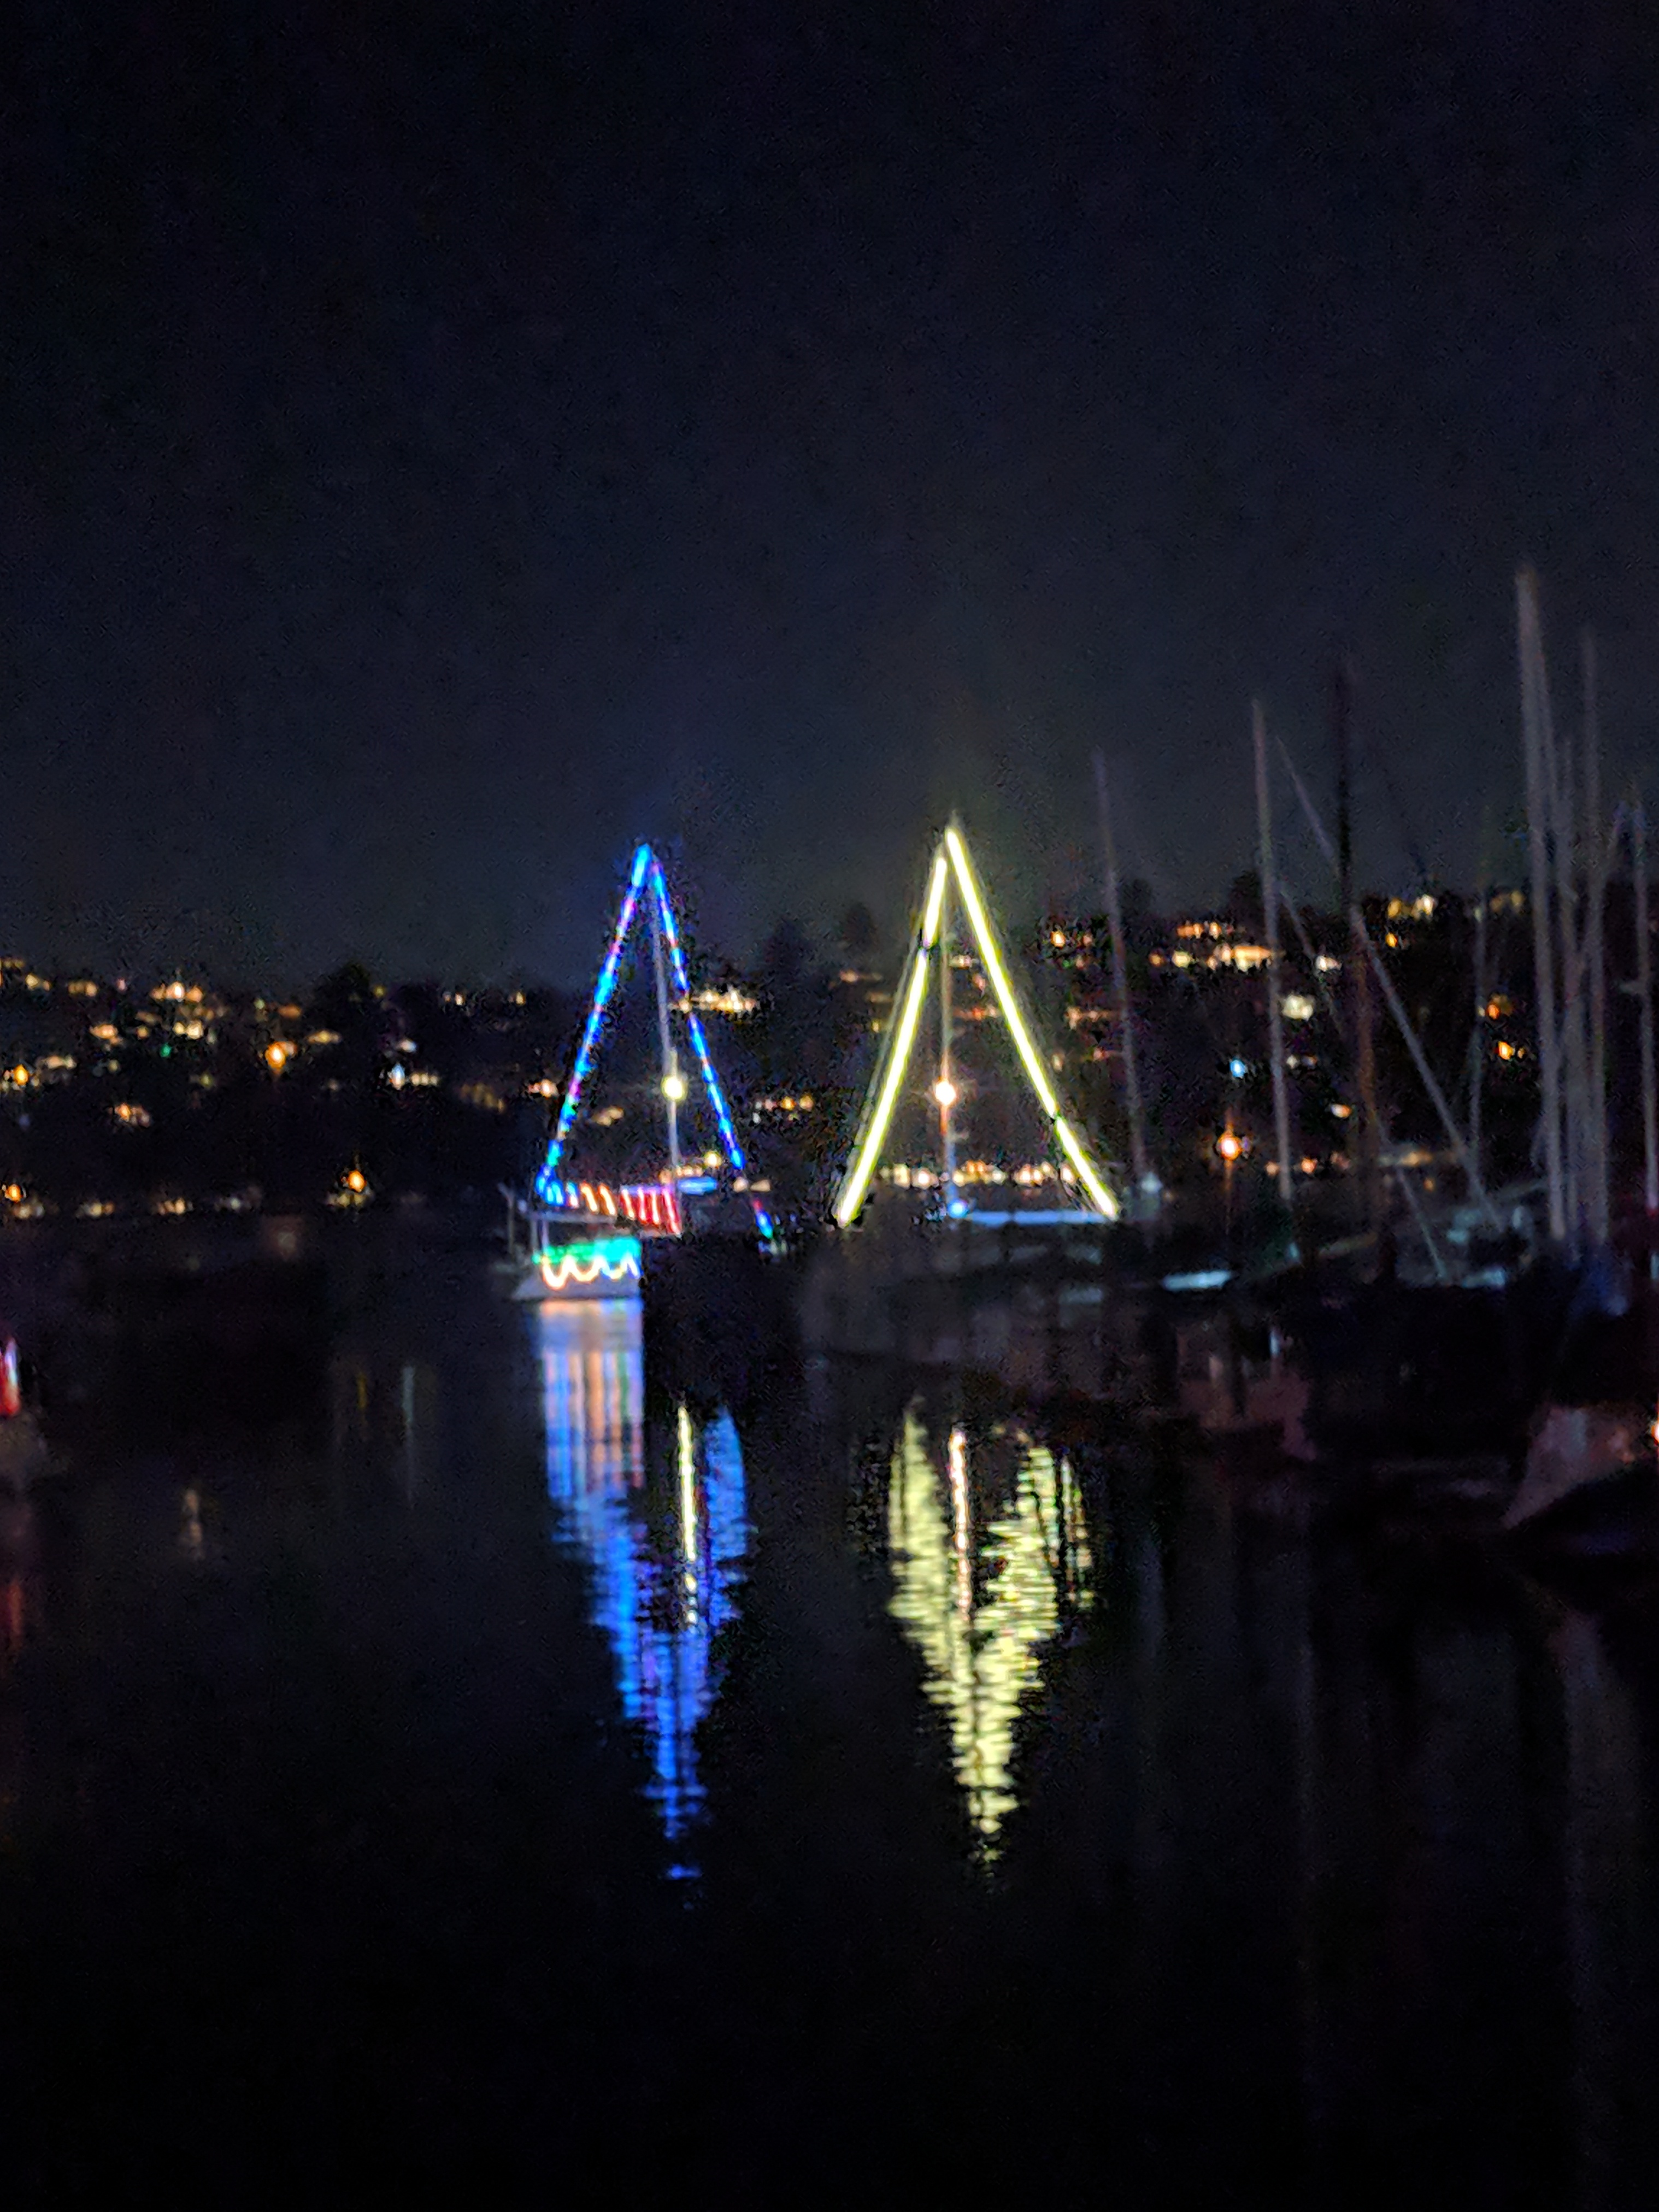 sailboats decorated with holiday lights, with lights reflected in the water